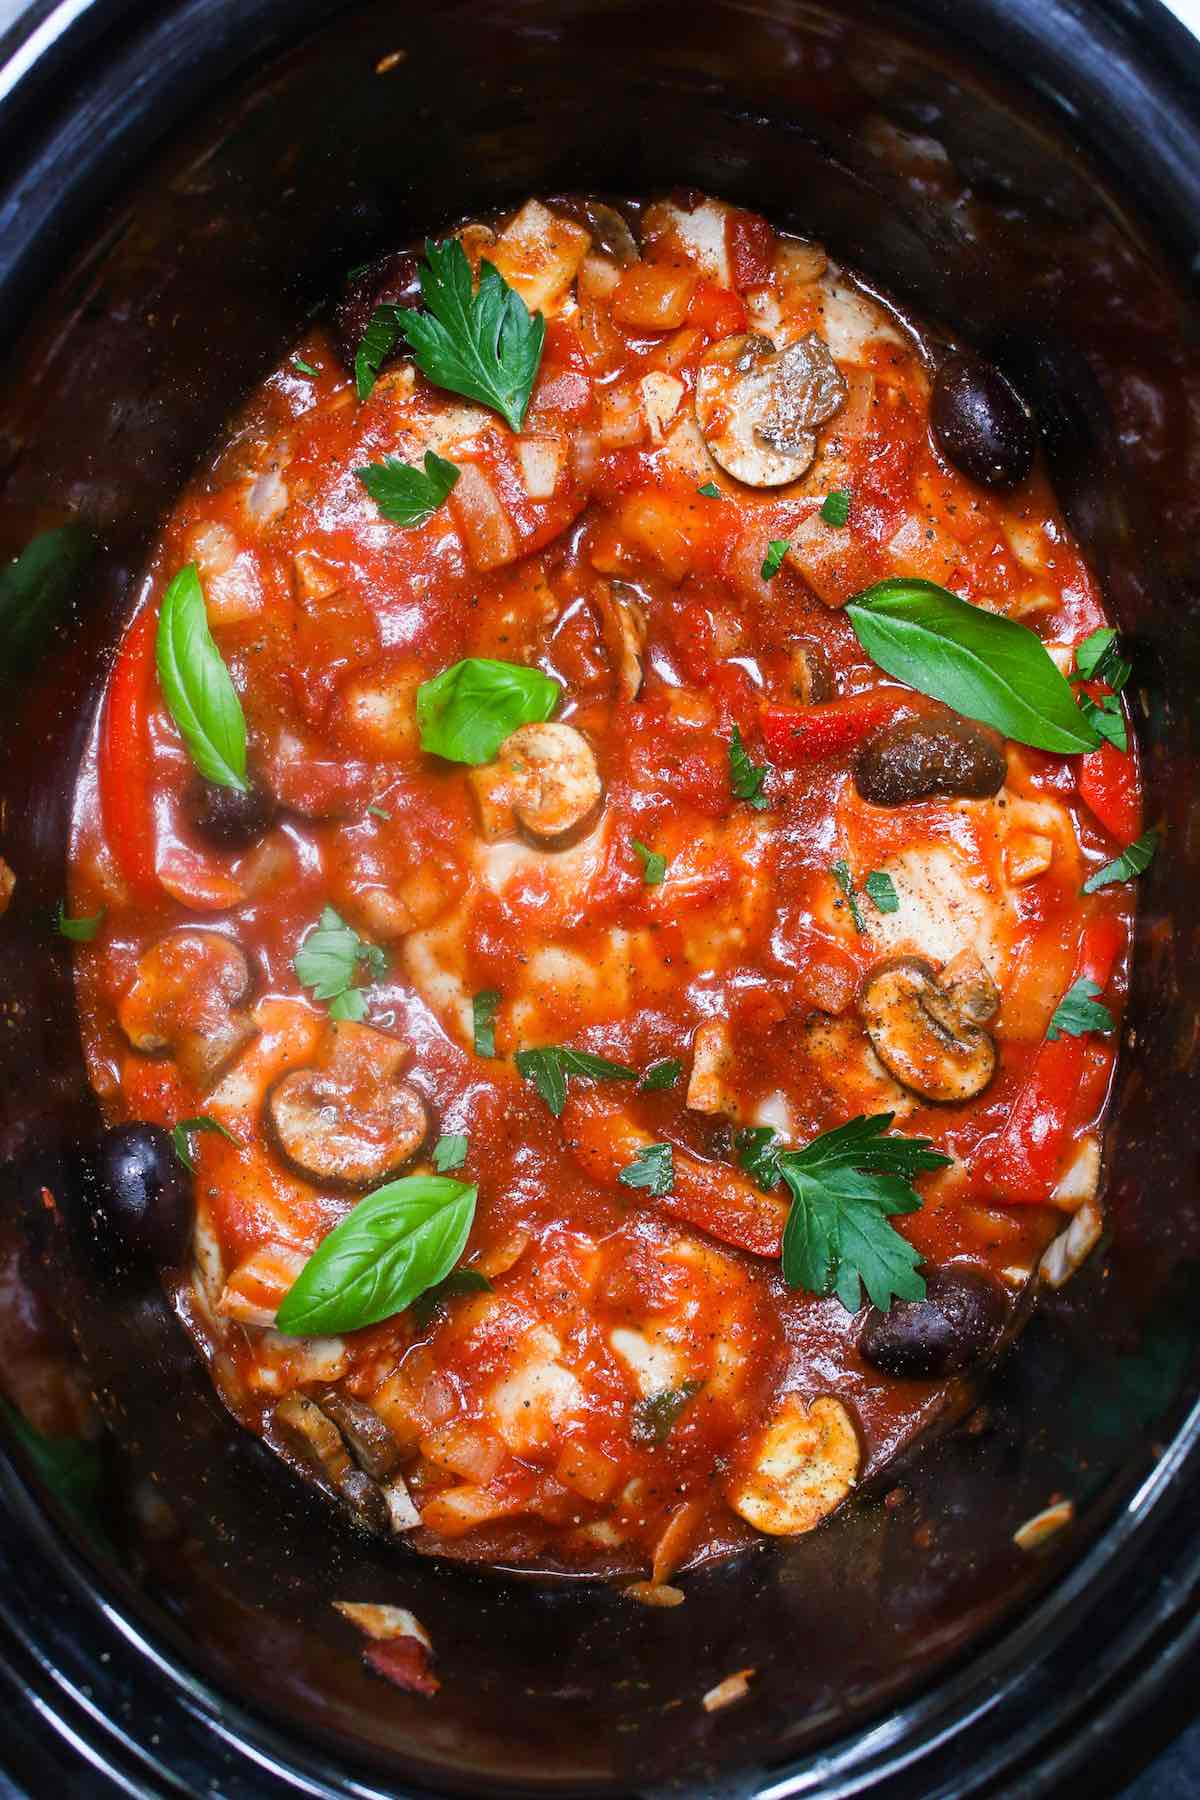 This easy and healthy Crock Pot Chicken Cacciatore is a tender and flavorful Italian chicken dinner recipe made in a slow cooker. Chicken thighs or chicken breasts are simmered in a rich and mouth-watering cacciatore sauce, absorbing all the delicious flavors!